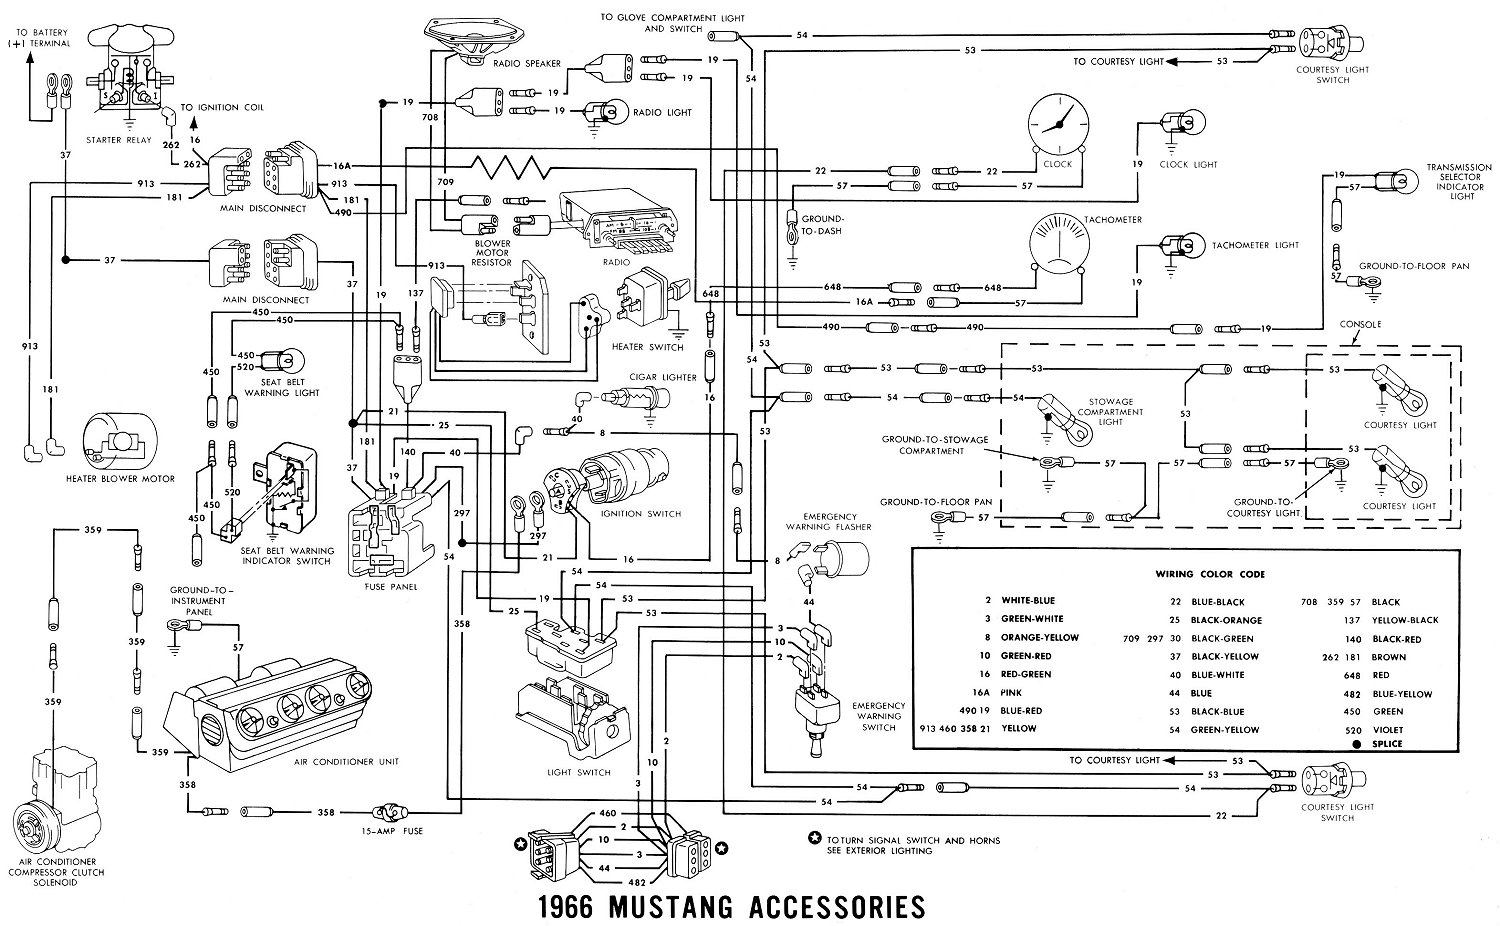 1966 Ford Convertible Wiring Diagram Schematic Start Building A F100 Of 1981 Mustang Diagrams Average Joe Restoration Rh Averagejoerestoration Com Bronco 1989